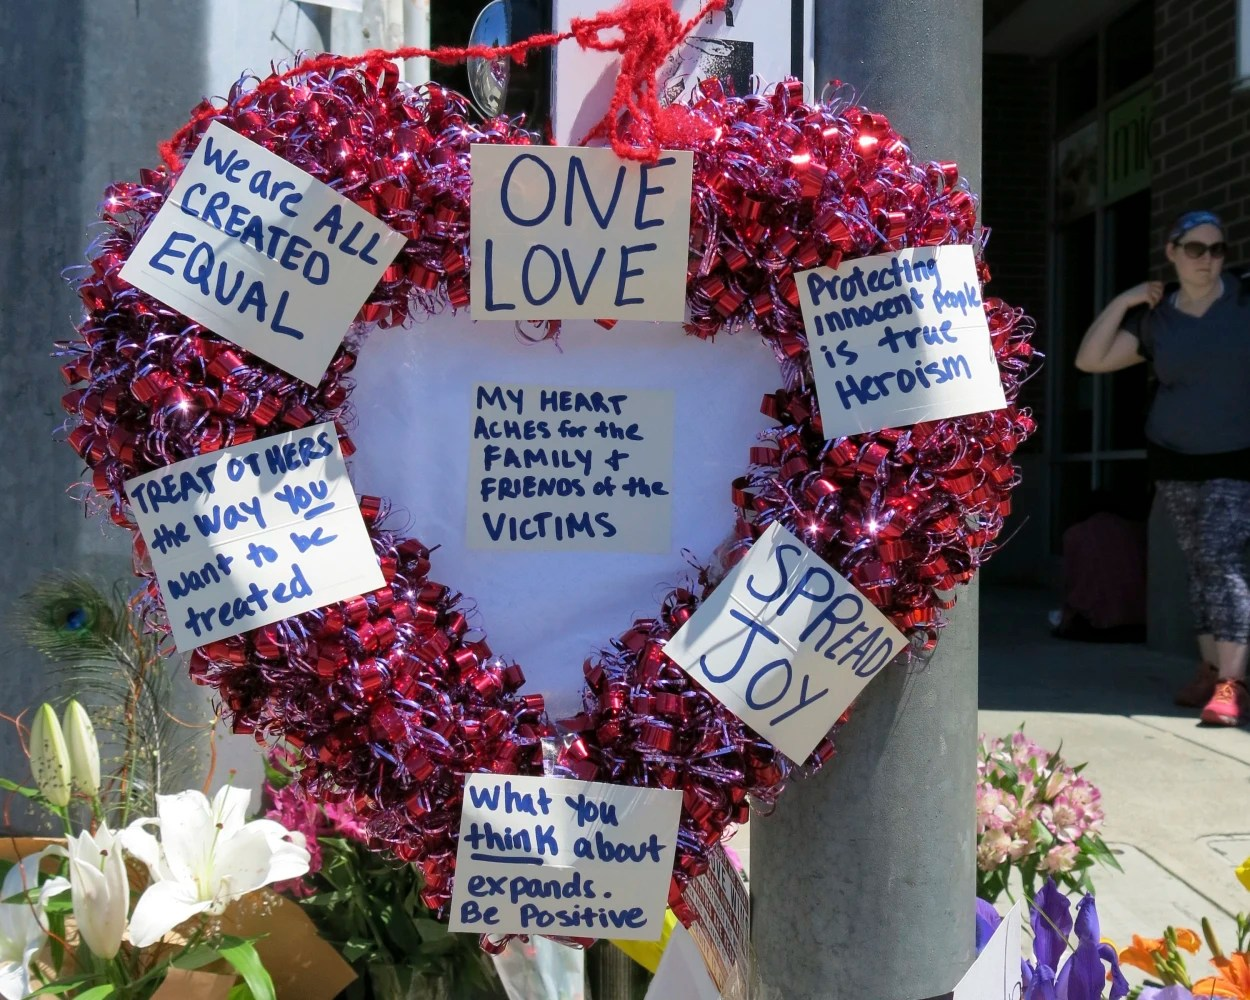 Portland victim's mother appeals Trump to speak against intolerance